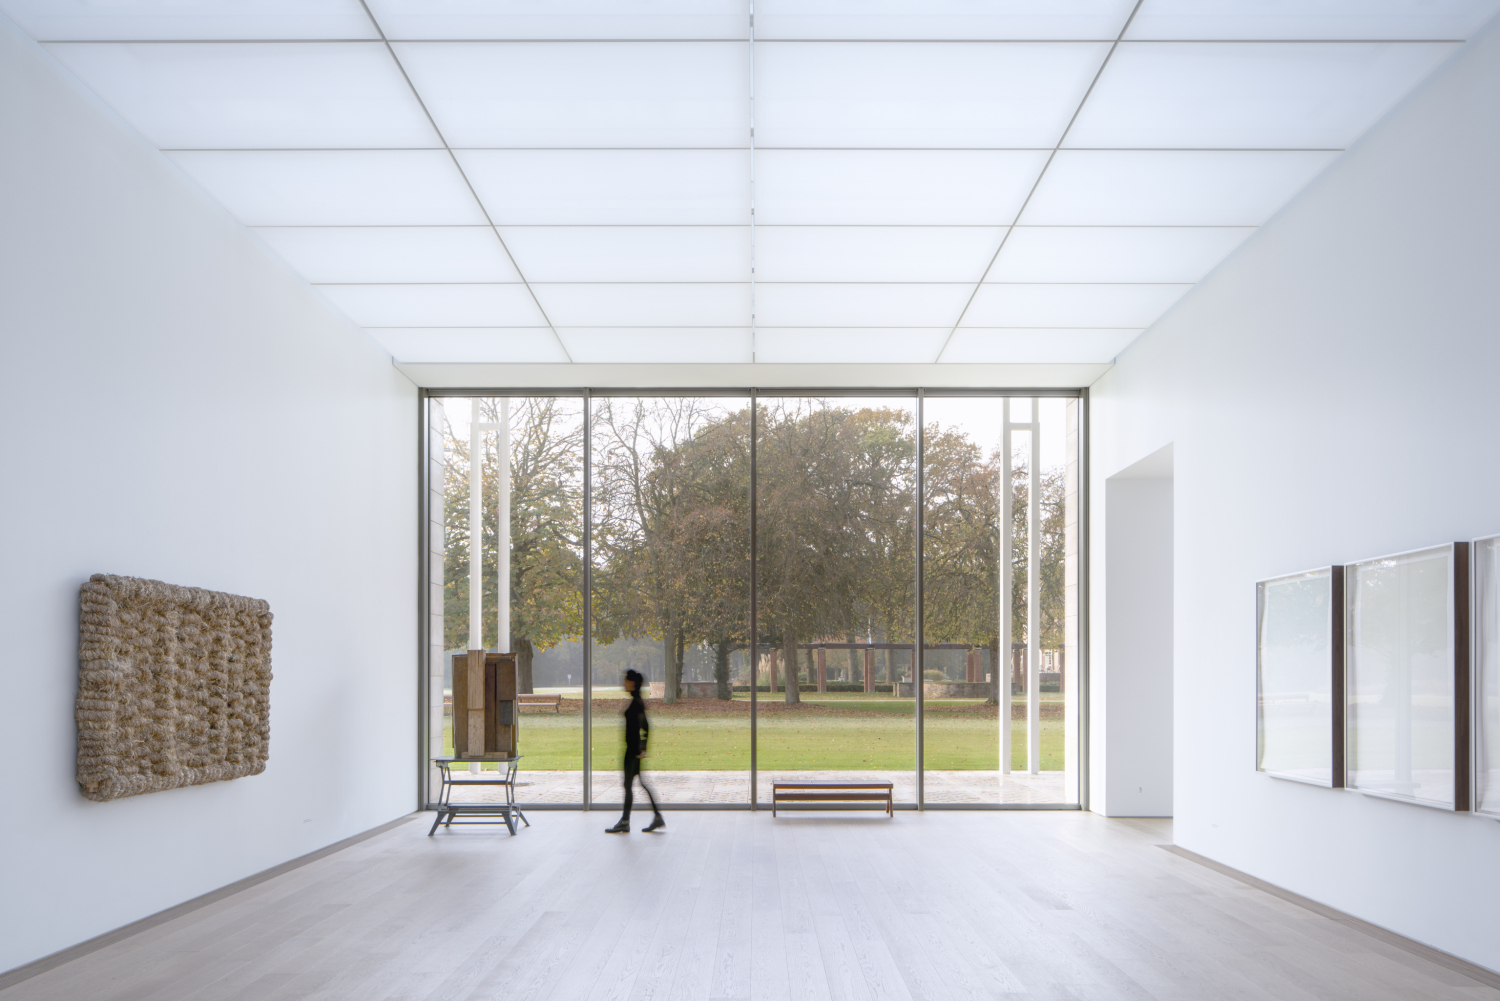 Museum Voorlinden is among the nominees for Dutch Daylight Award 2018